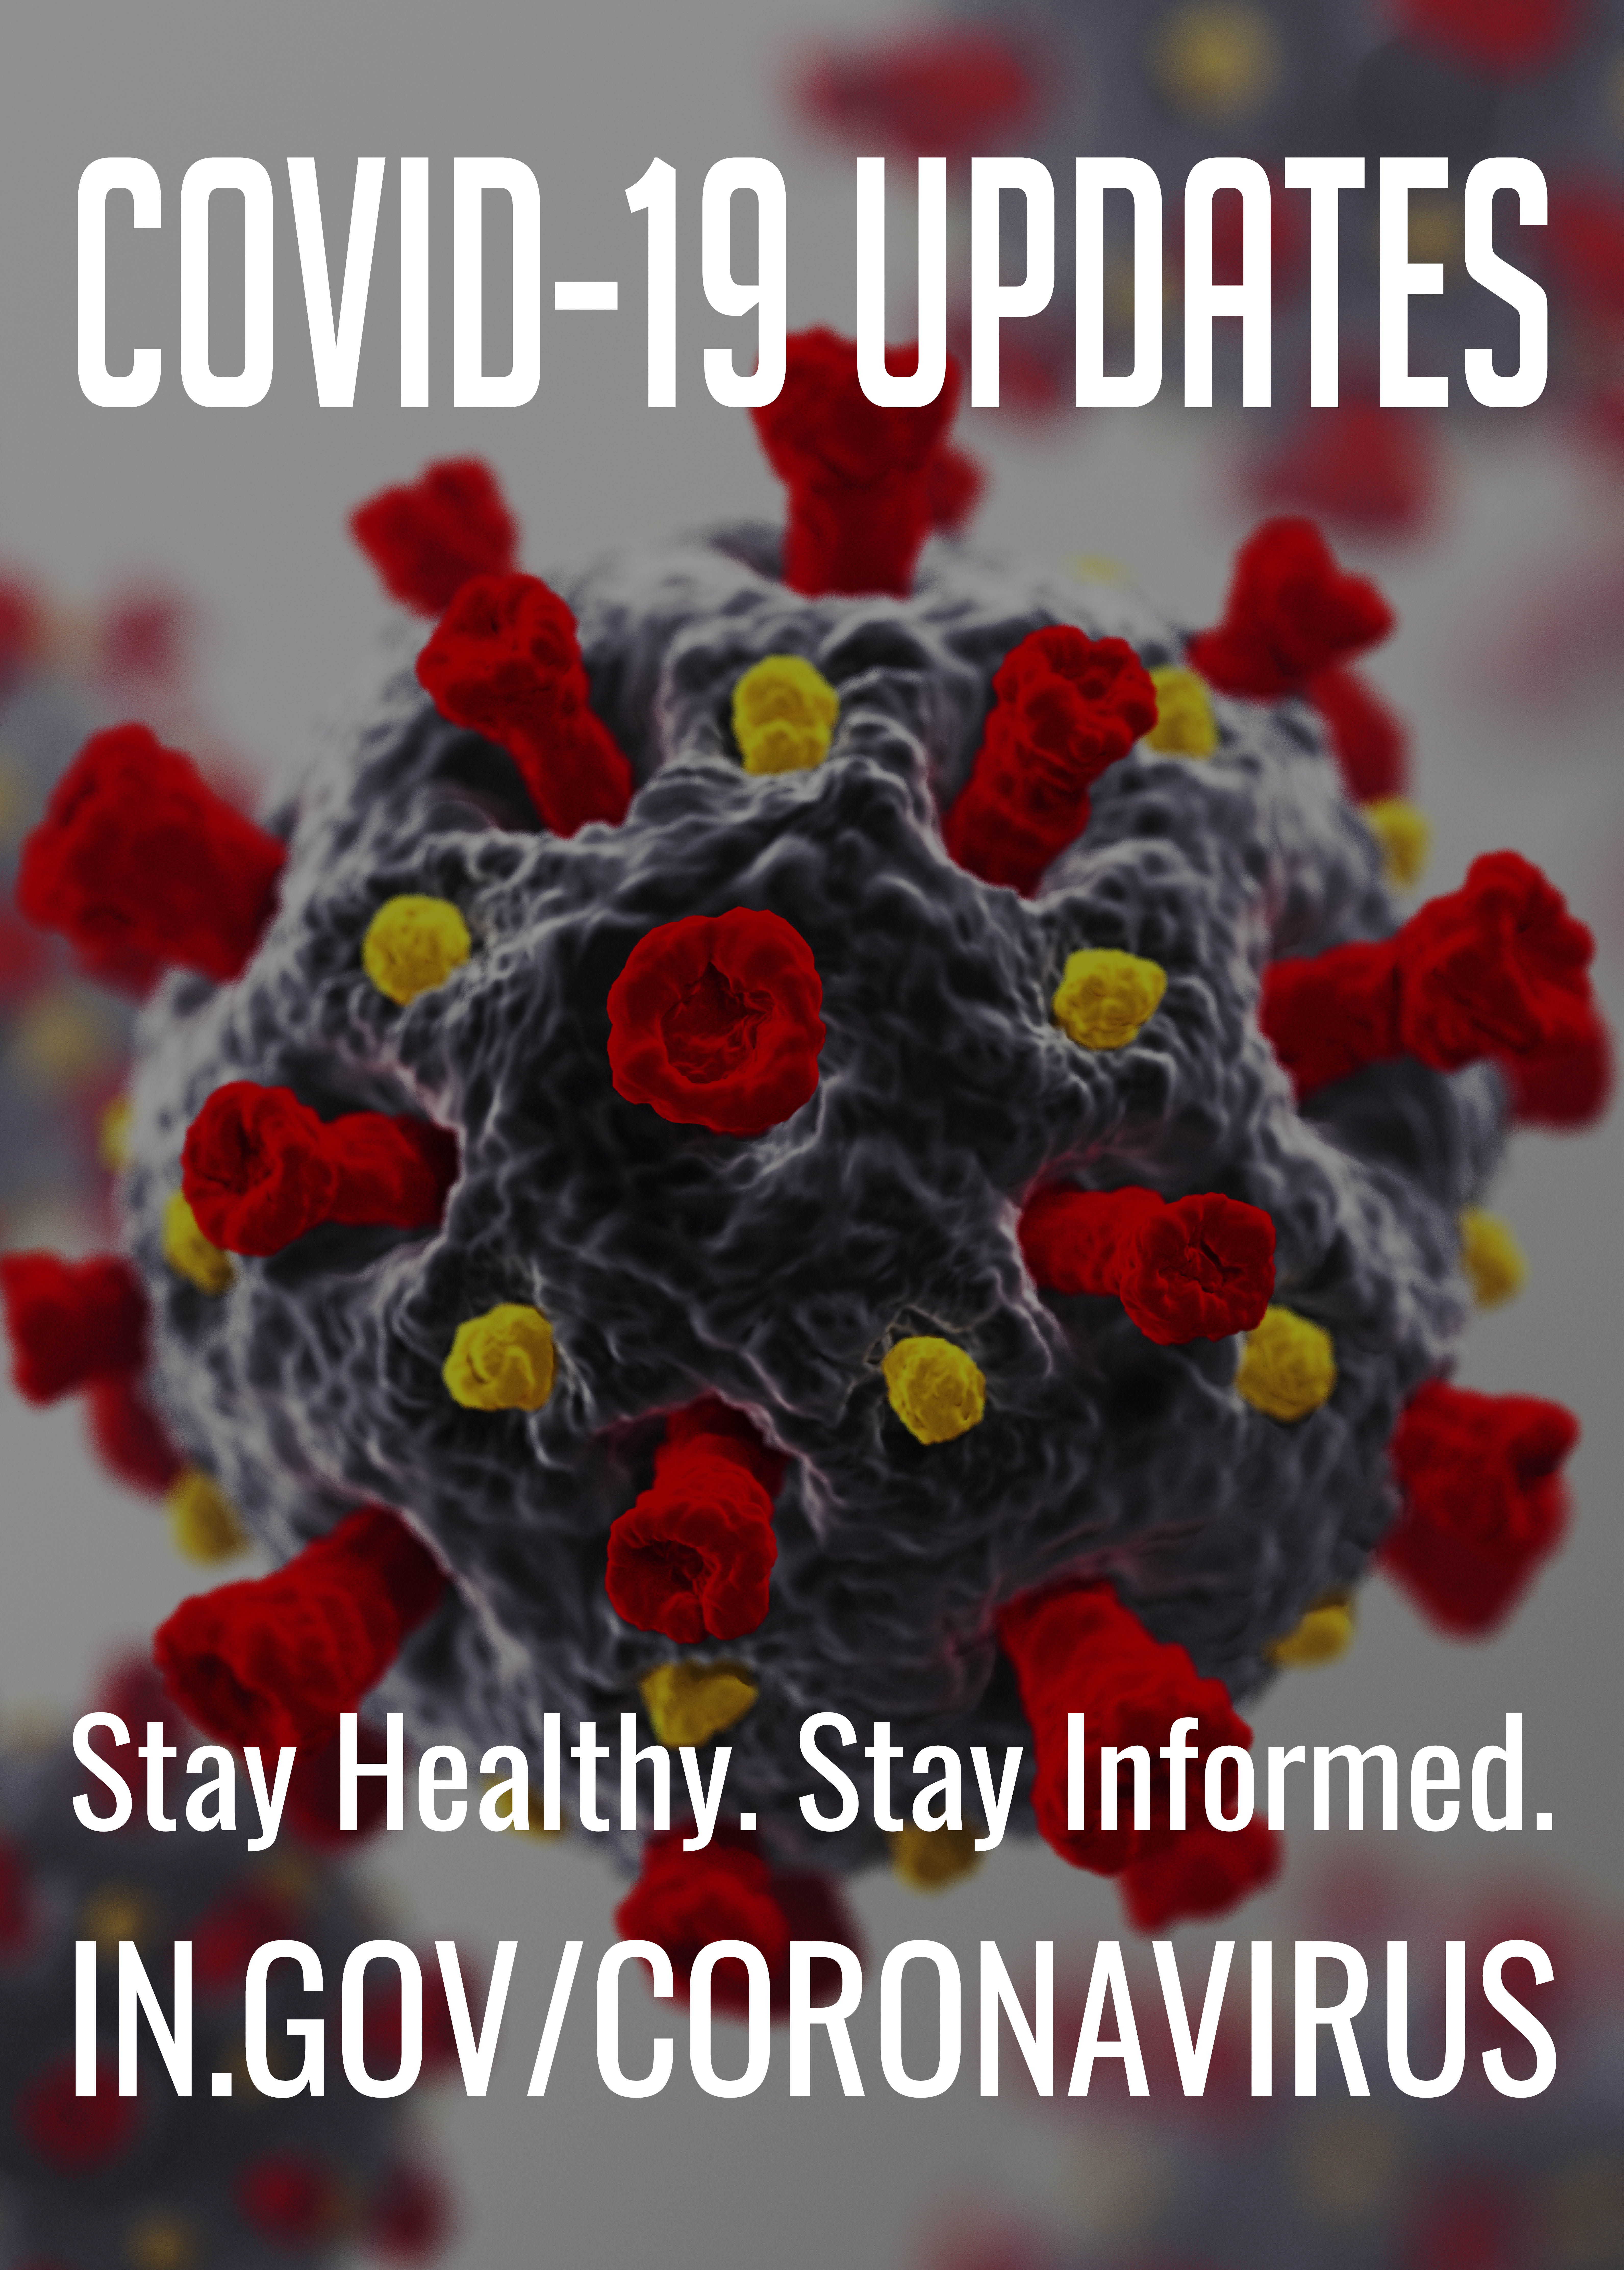 Stay up-to-date on the coronavirus